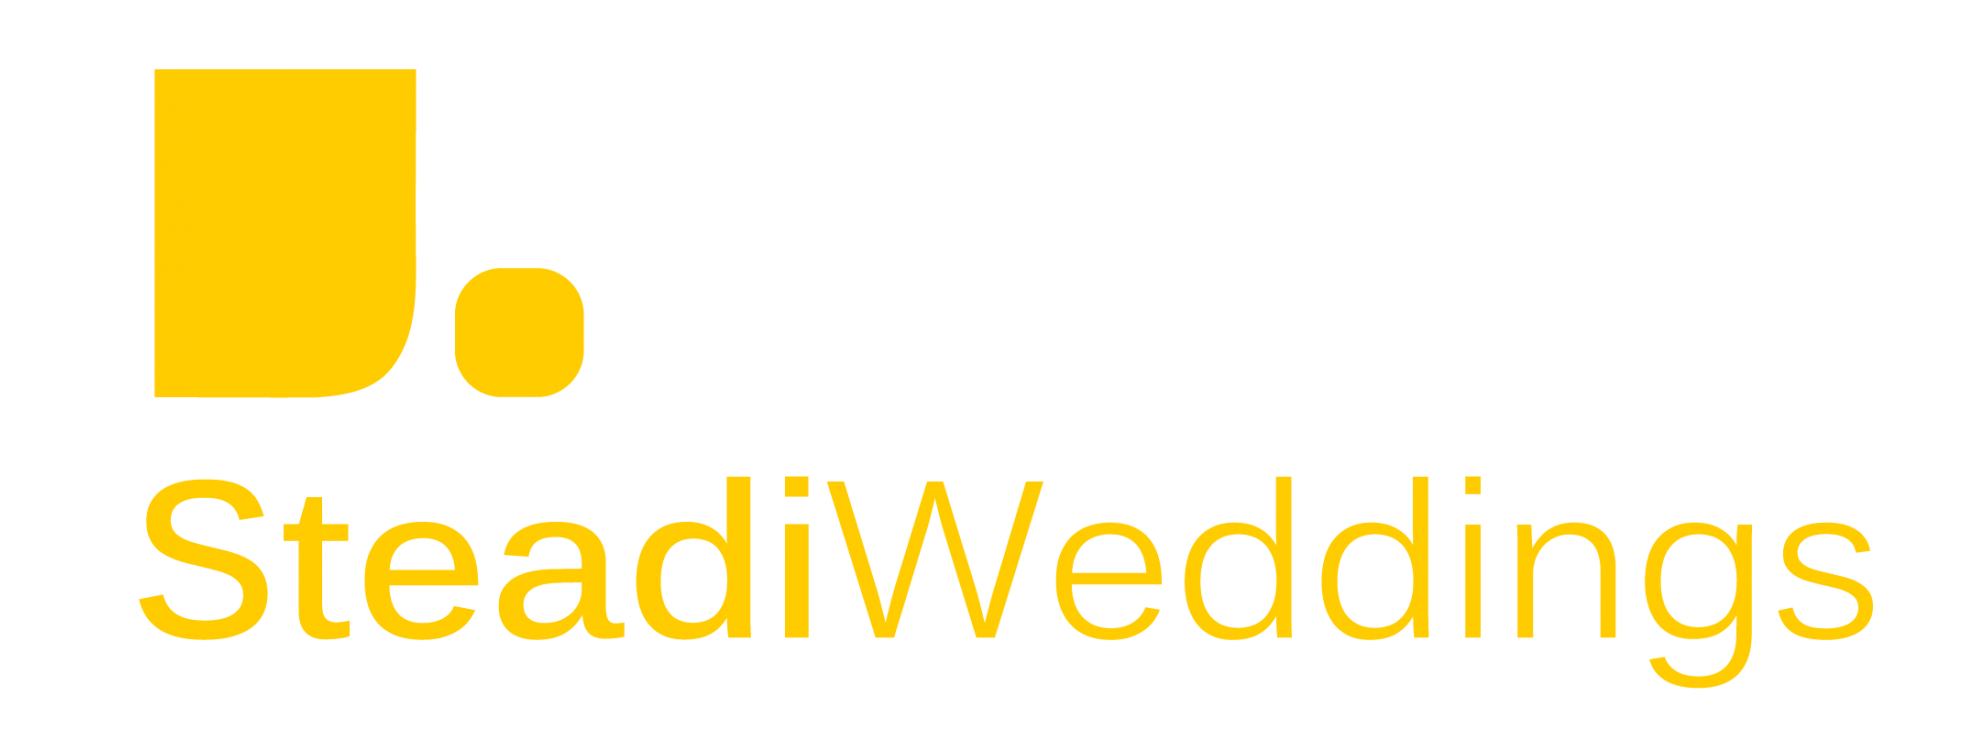 SteadiWeddings